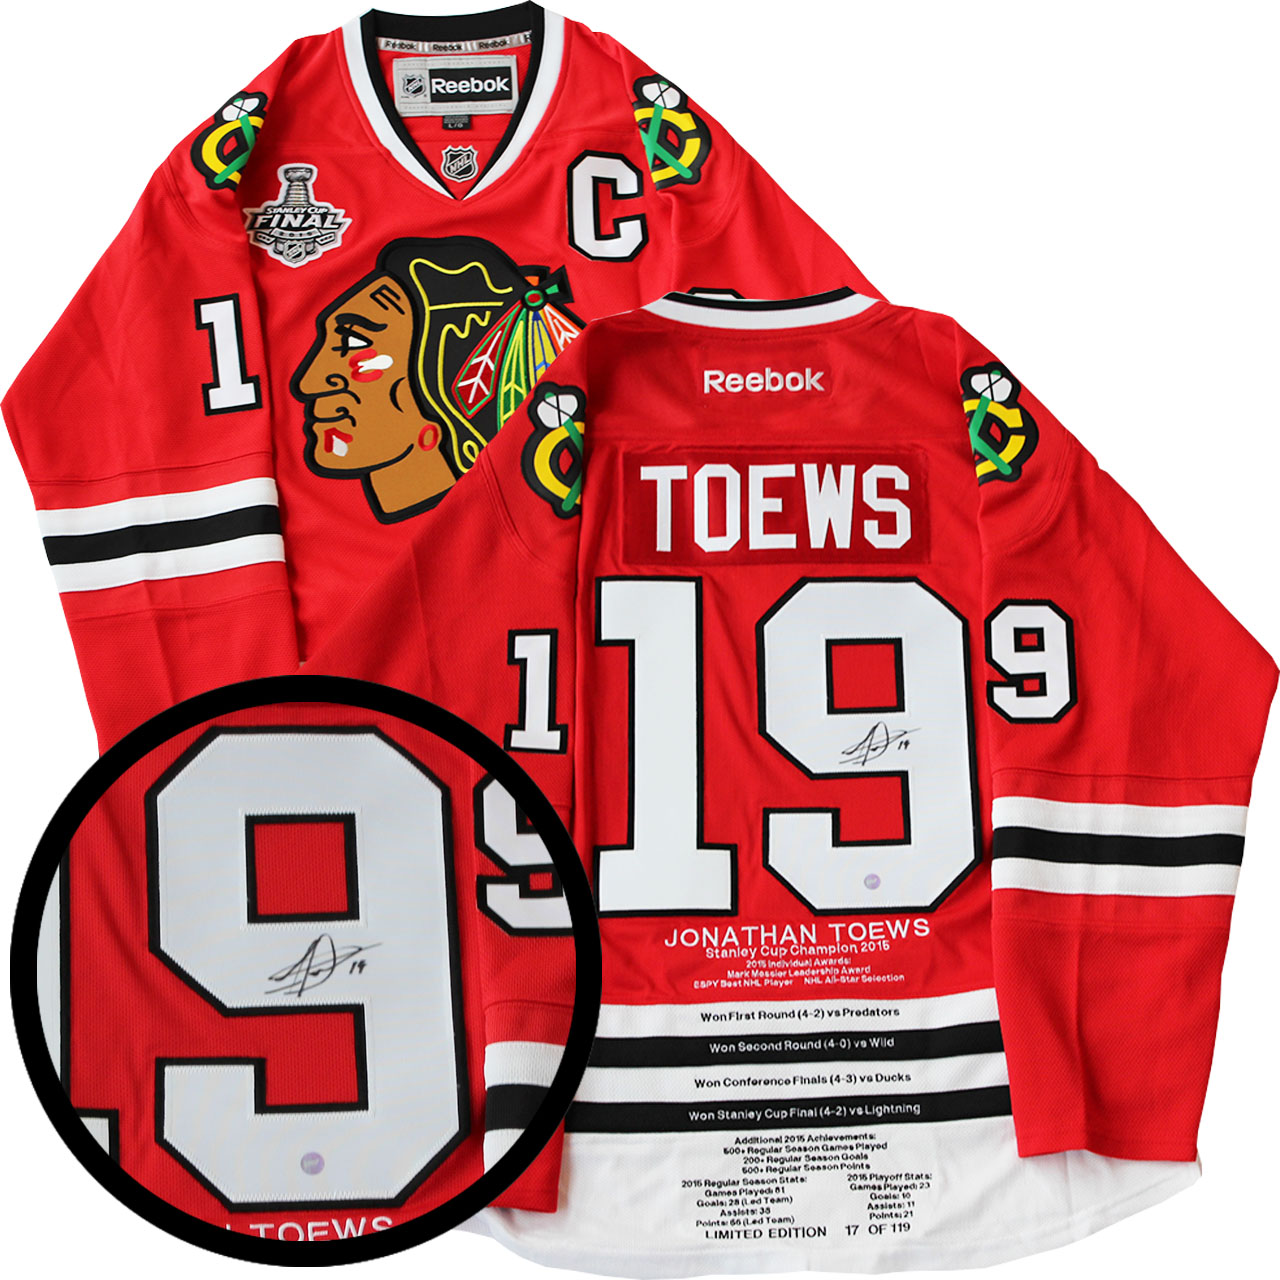 91ae78bee70 Jonathan Toews Signed Milestone Jersey Chicago Blackhawks Replica Red  Reebok 2015 Cup LE 119